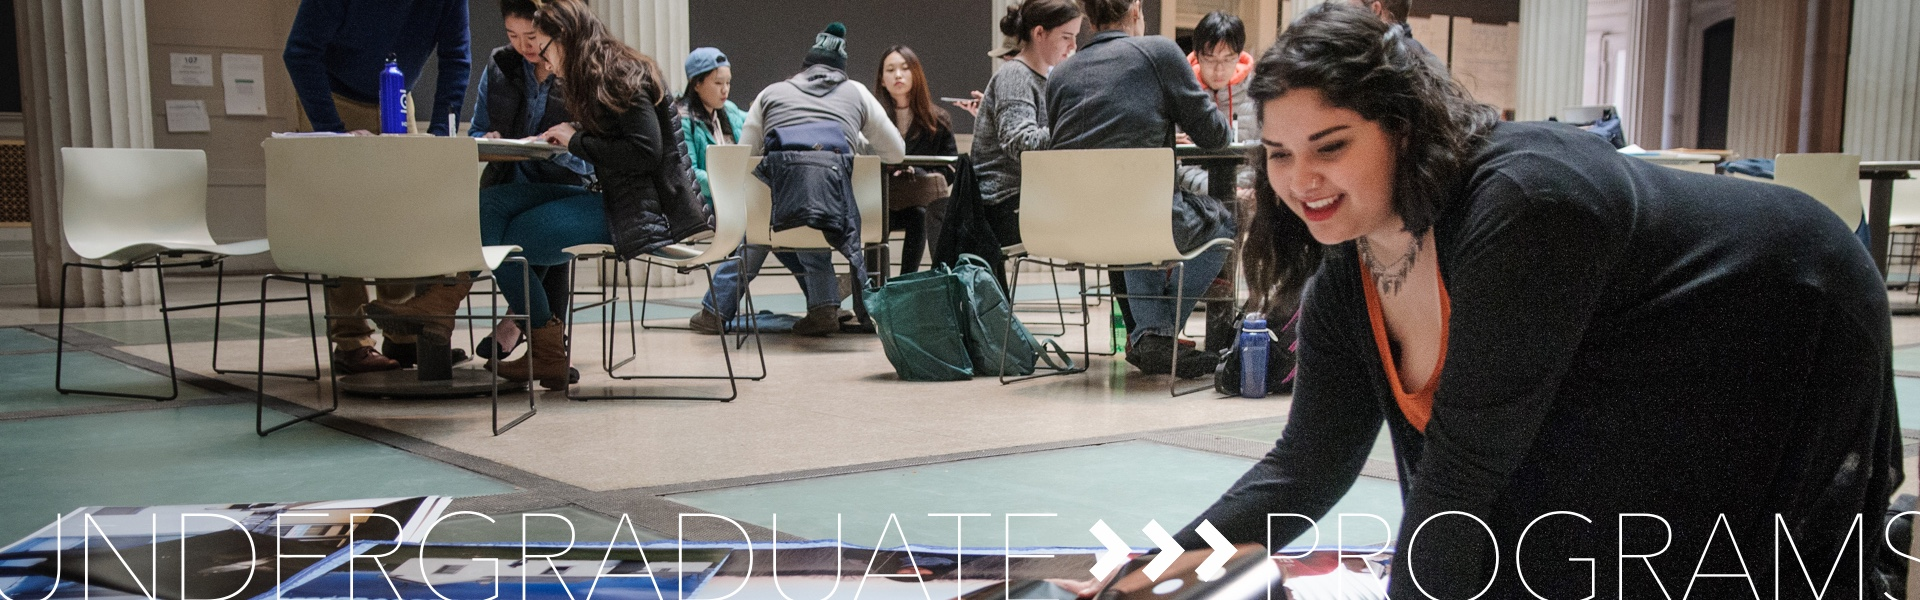 Undergraduate Programs; student working on exhibition in atrium with other students talking at tables in the background